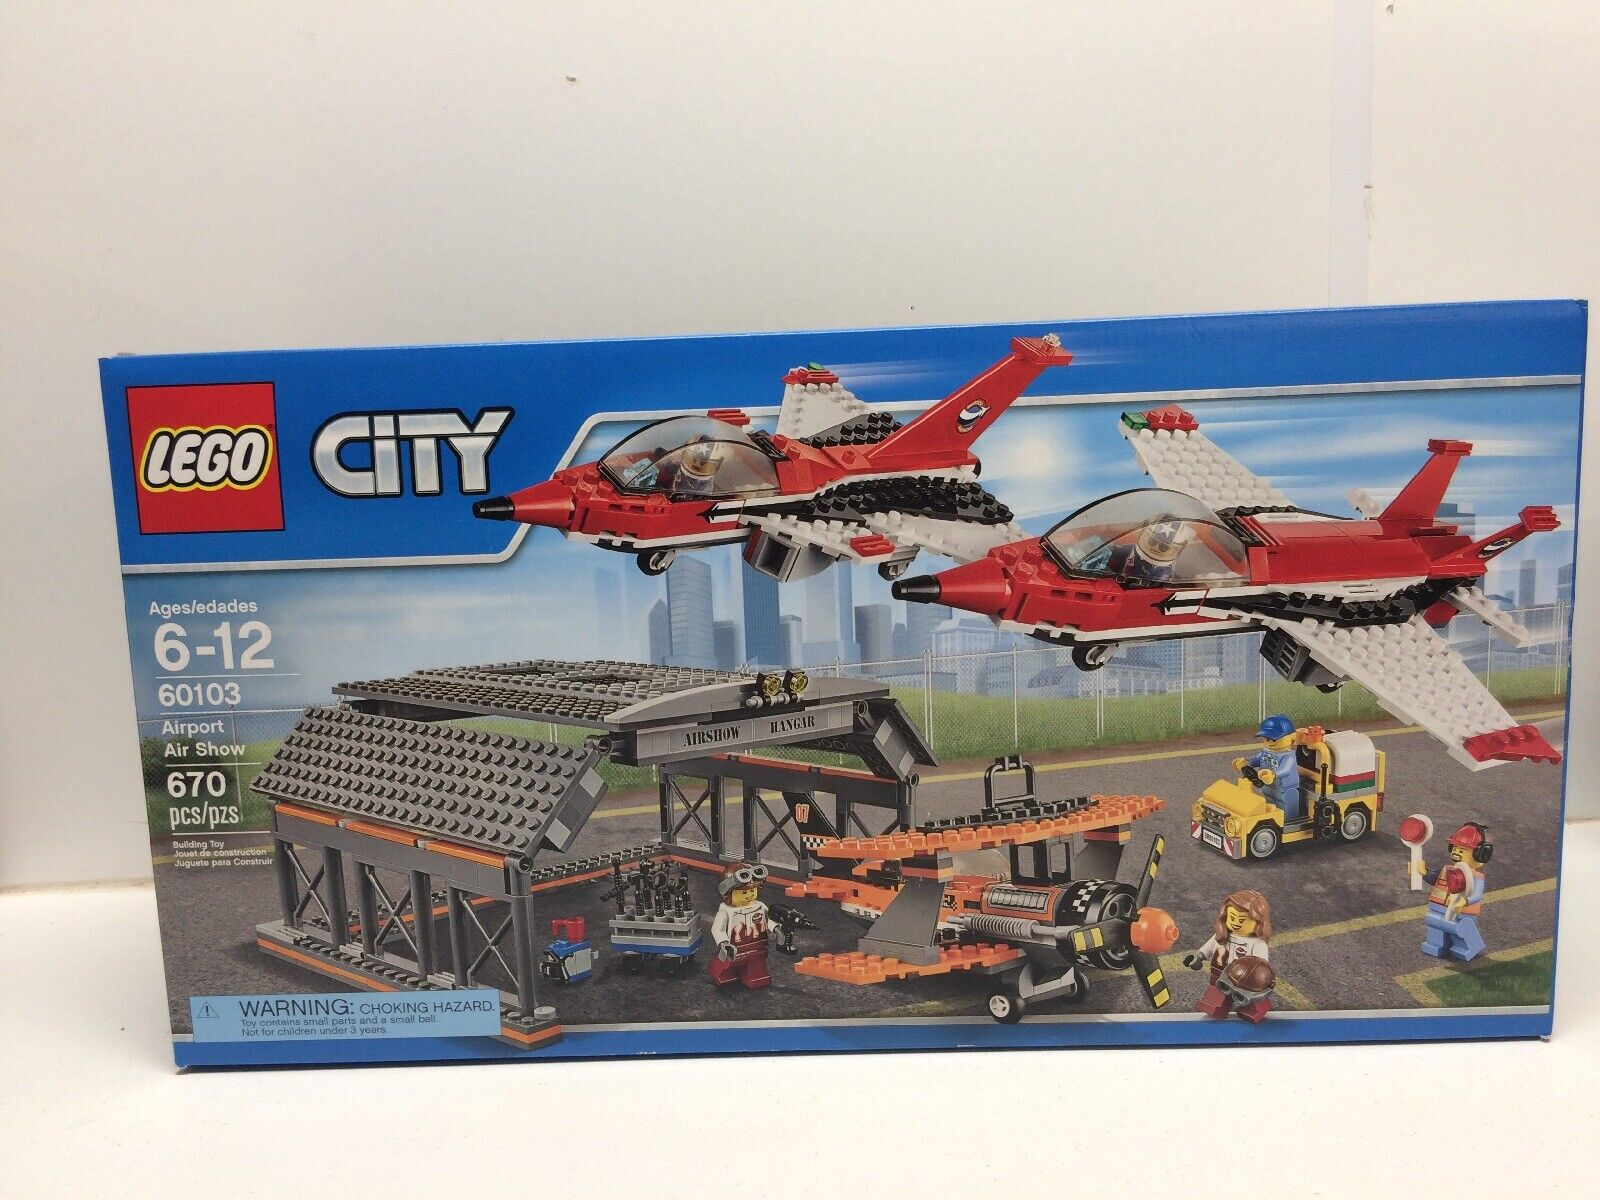 Show Airport Factory New Nisb City 60103 Lego Nib Air u13TlFKJc5